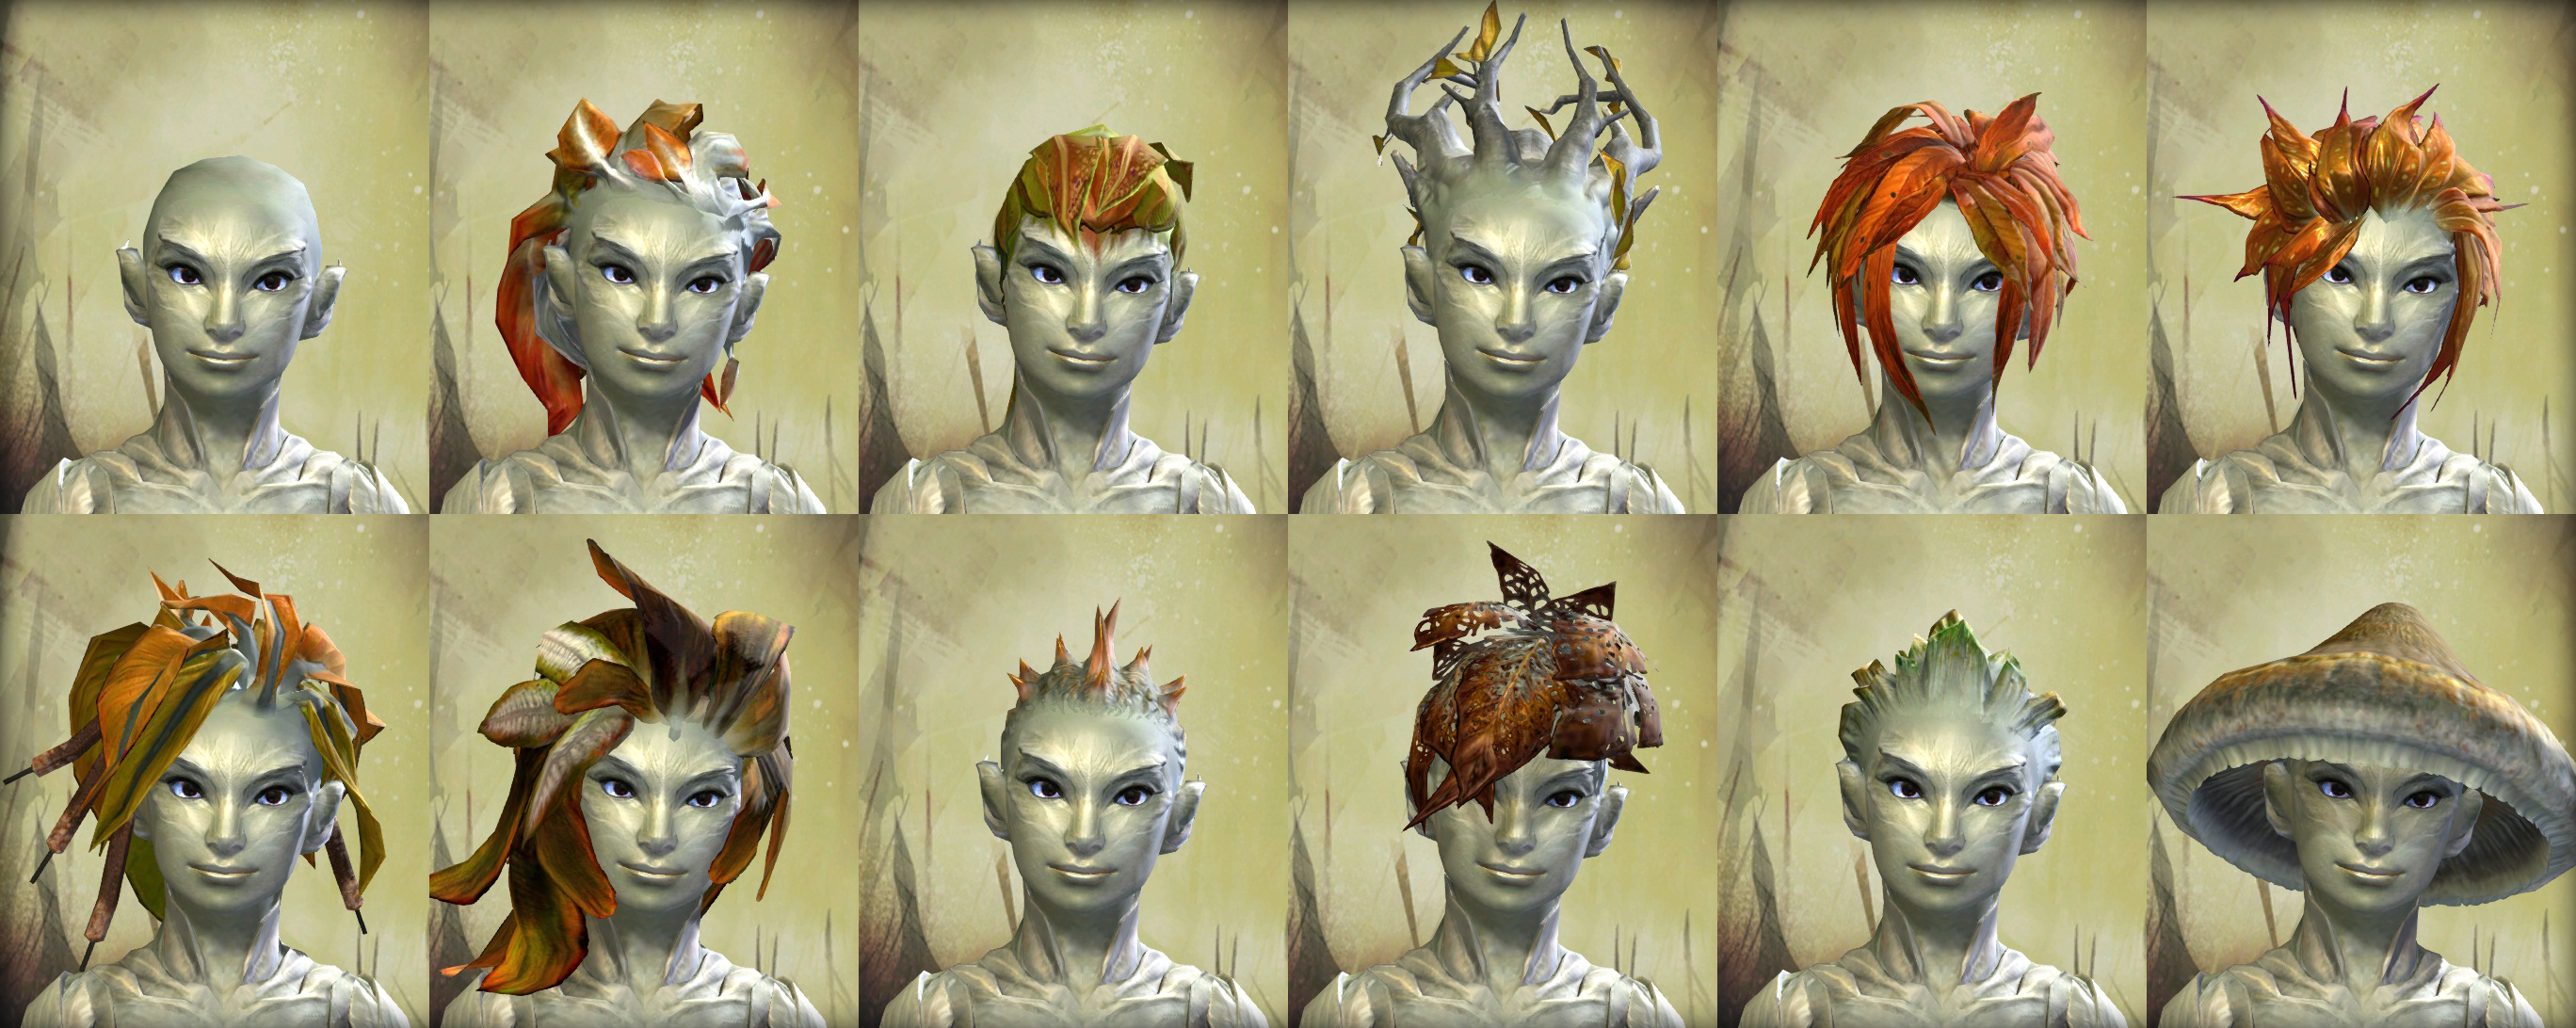 Pin By Shannon Leahy On Gw2 Shoot Guild Wars Womens Hairstyles Hair Styles